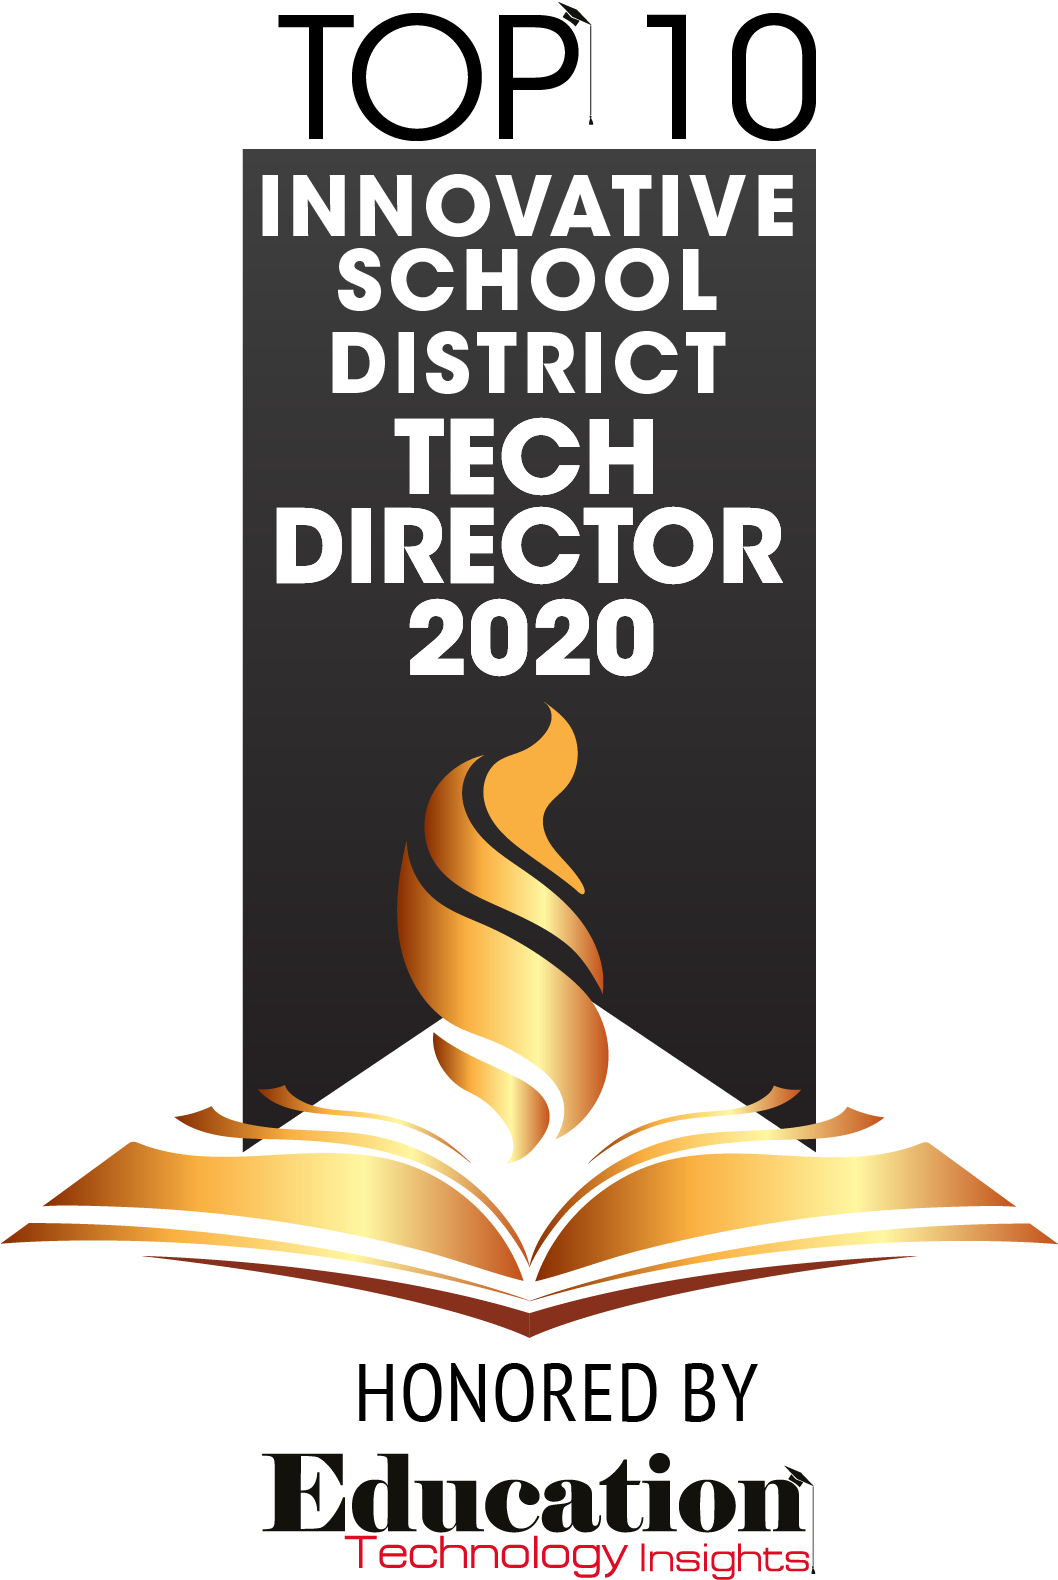 Top 10 Innovative School District Tech Director